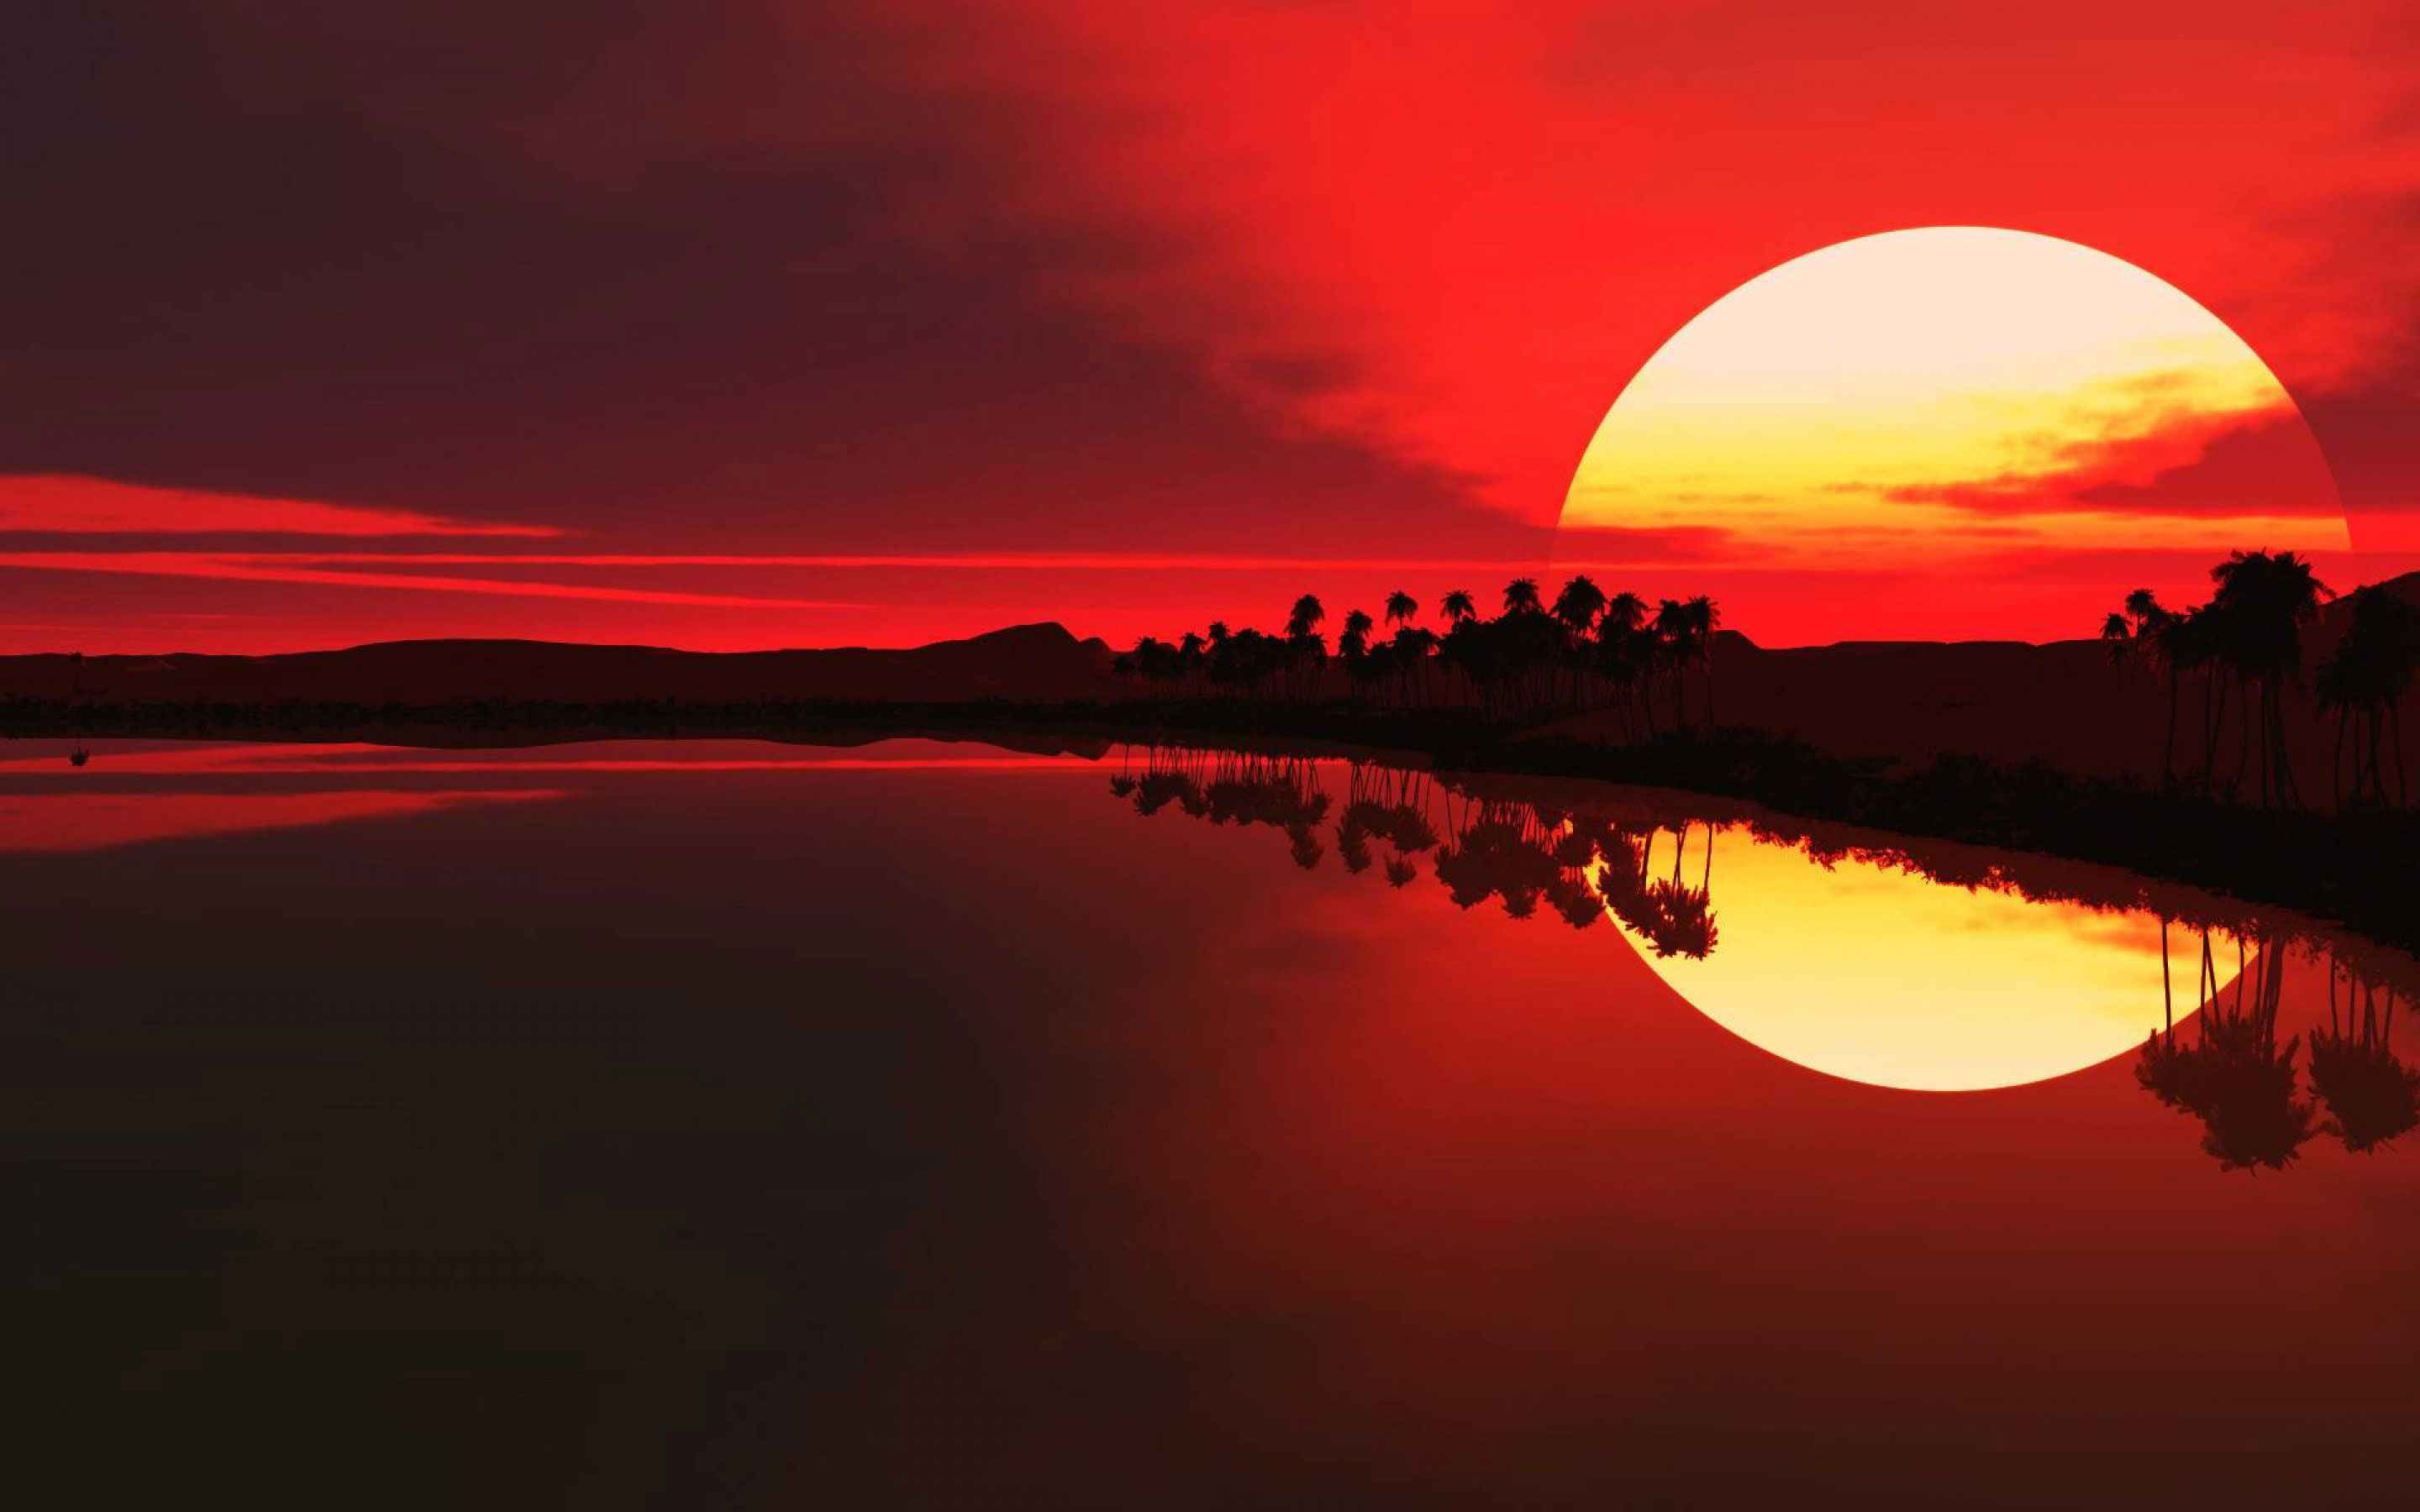 Wallpaper Of Sunset